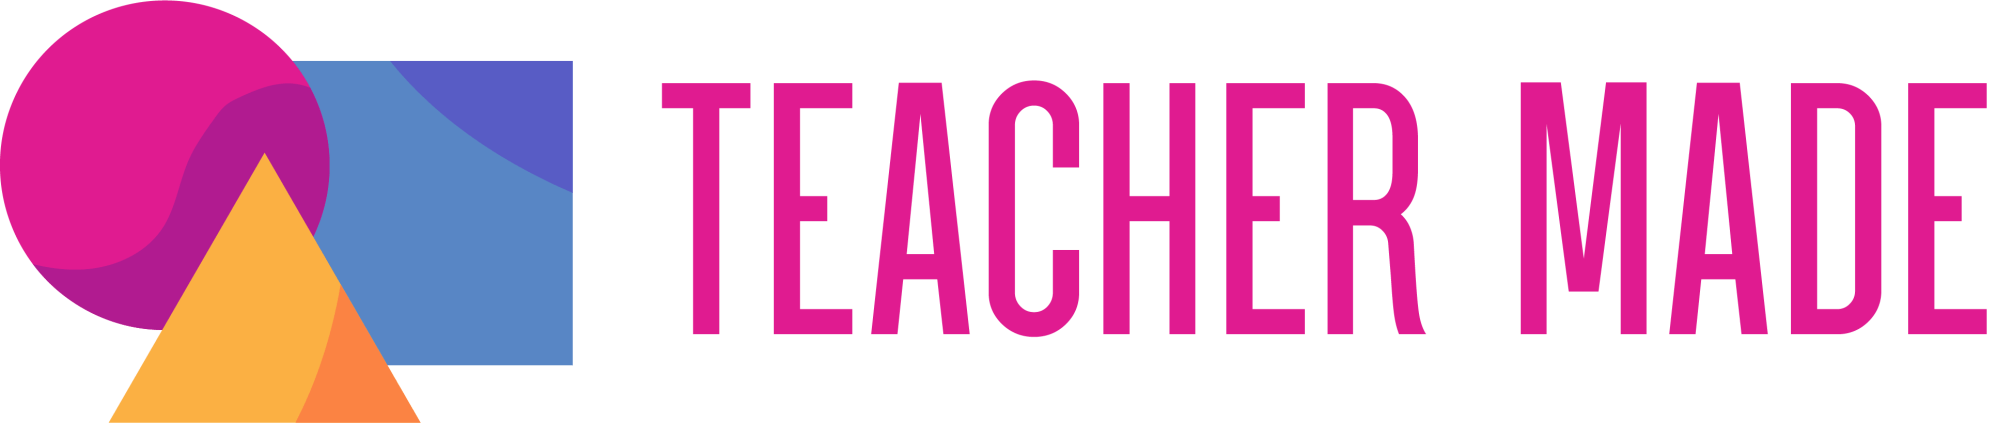 hight resolution of TeacherMade Home Page - TeacherMade